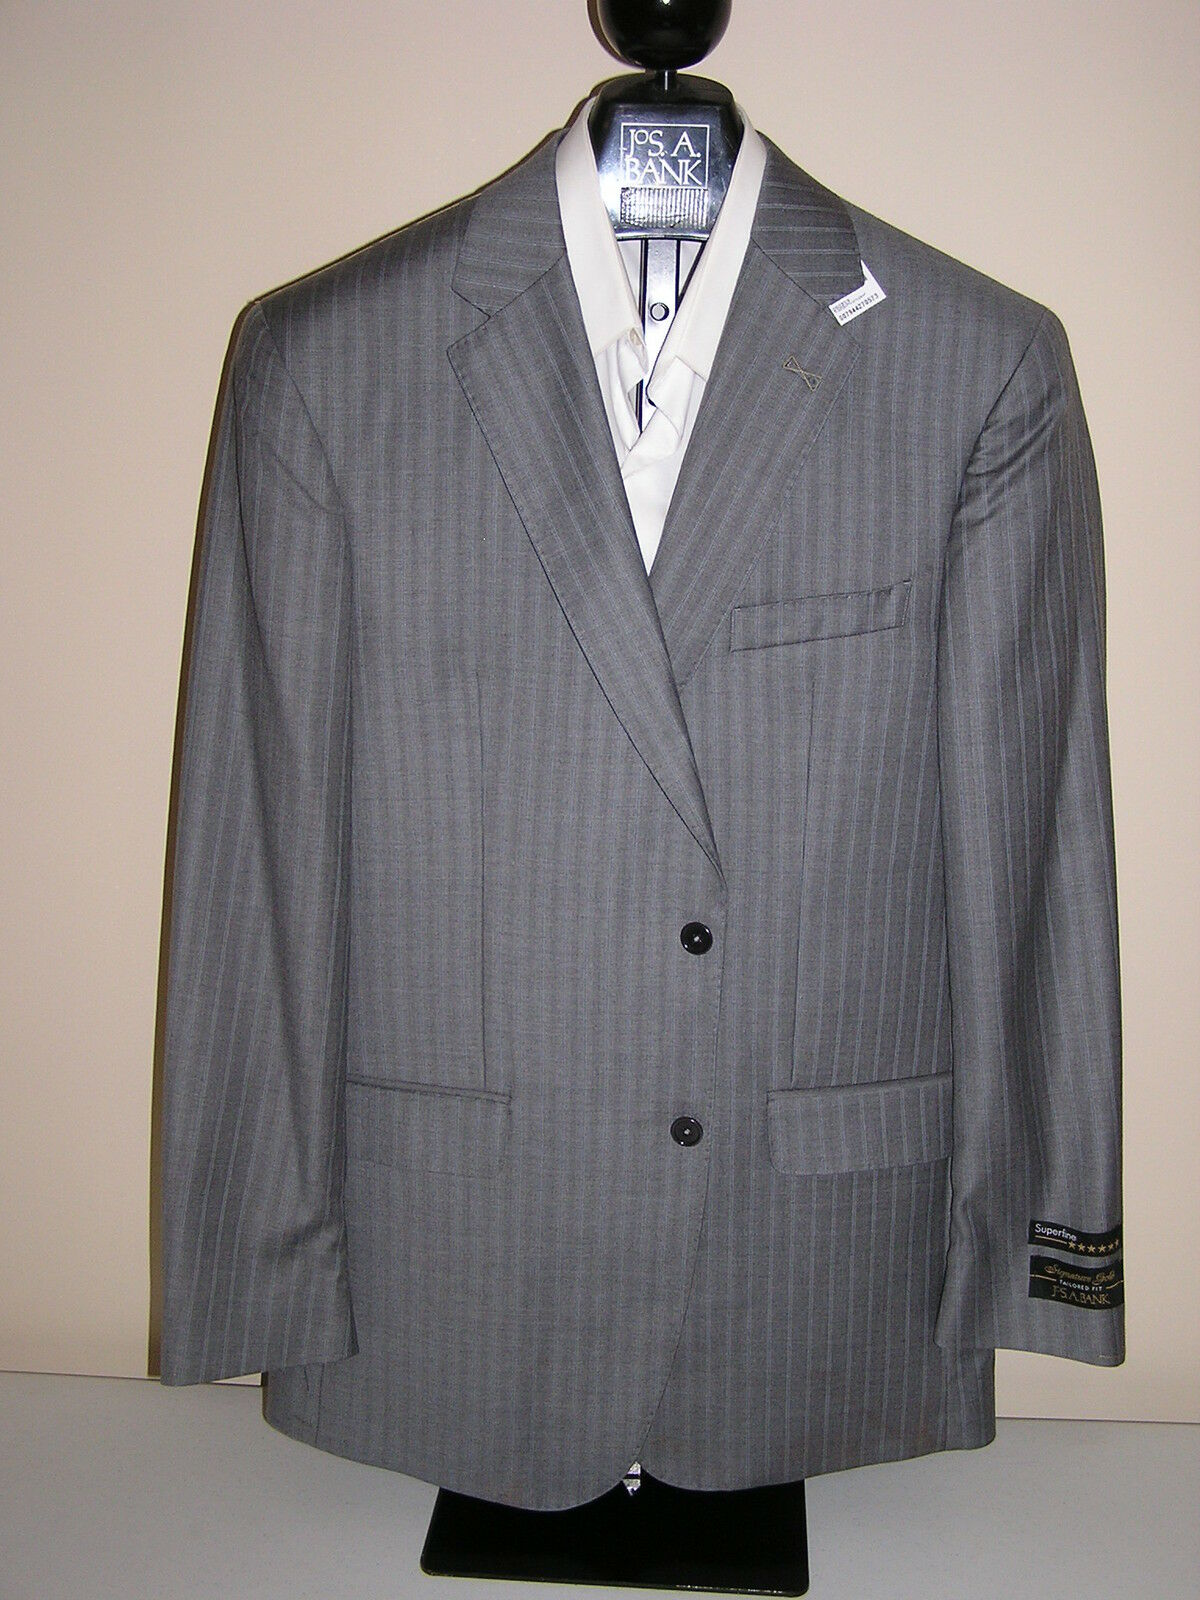 1295 new Jos A Bank Signature Gold  Grau stripe suit 42 X L 36 W tailoROT fit